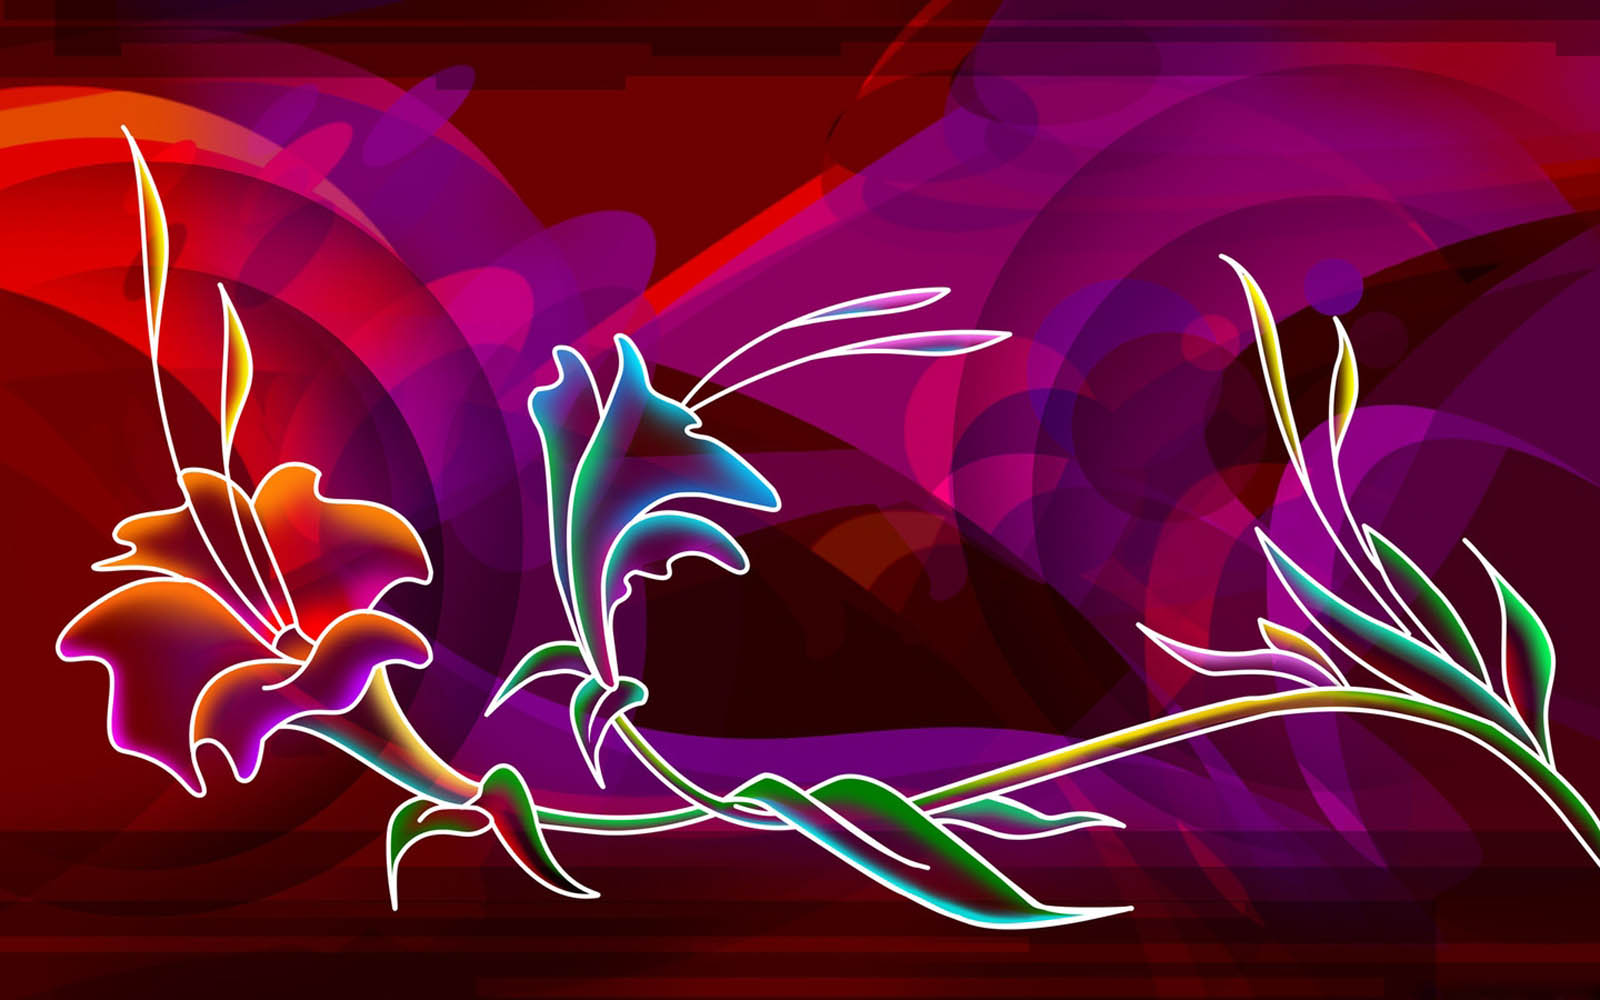 tag neon art wallpapers - photo #3